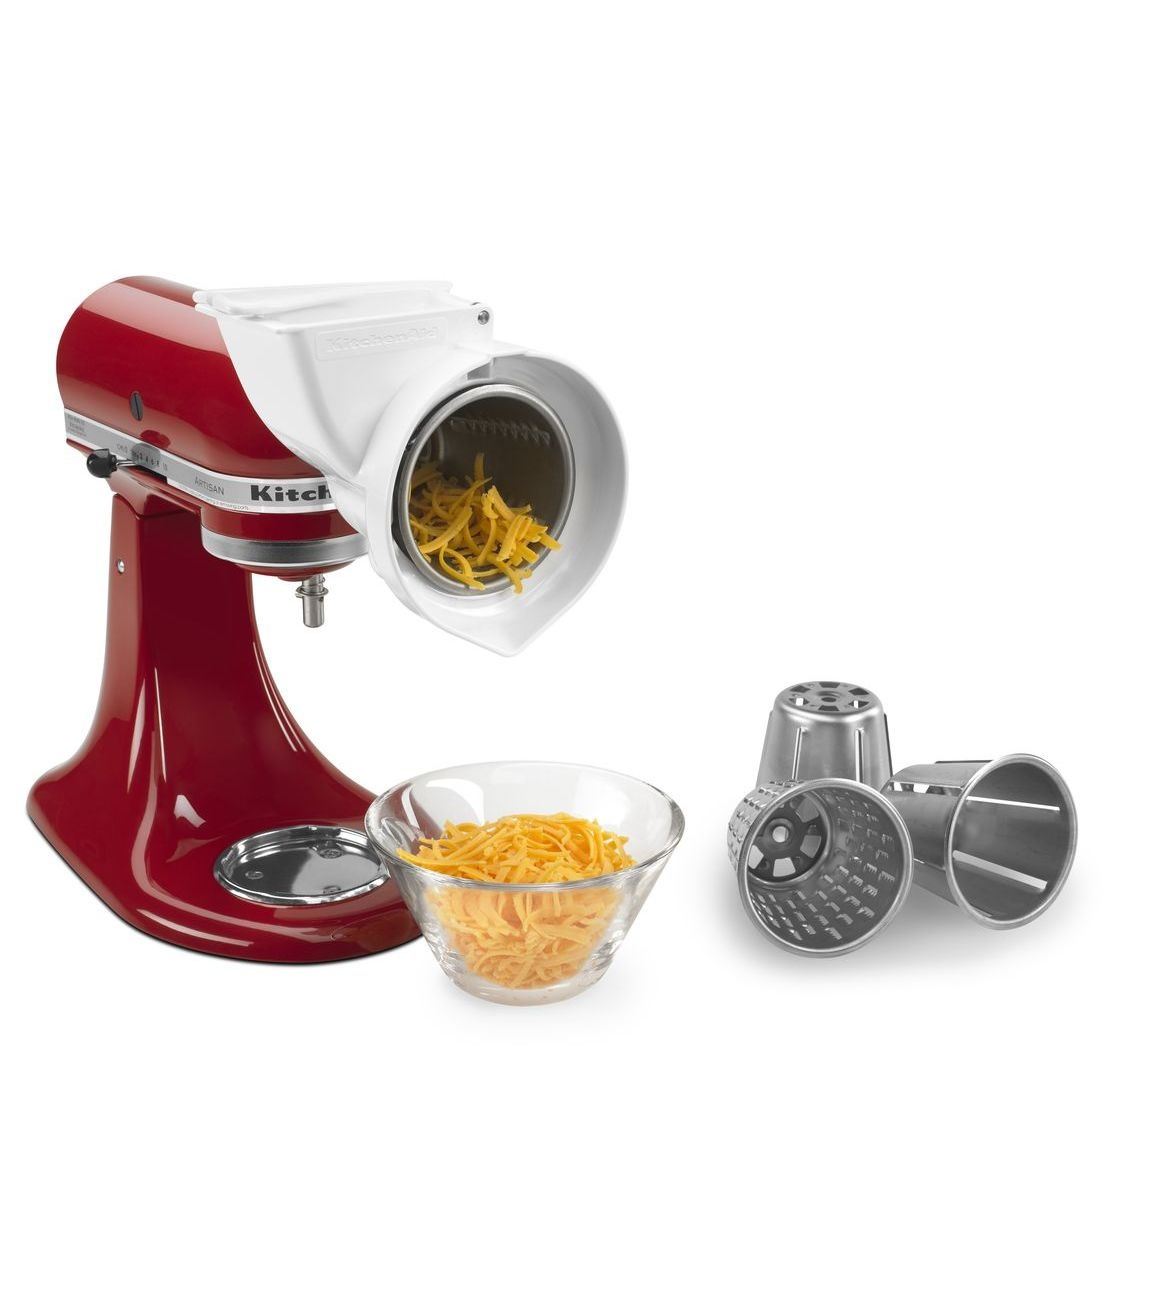 Kitchenaid Rvsa Slicer Shredder Attachment For Stand